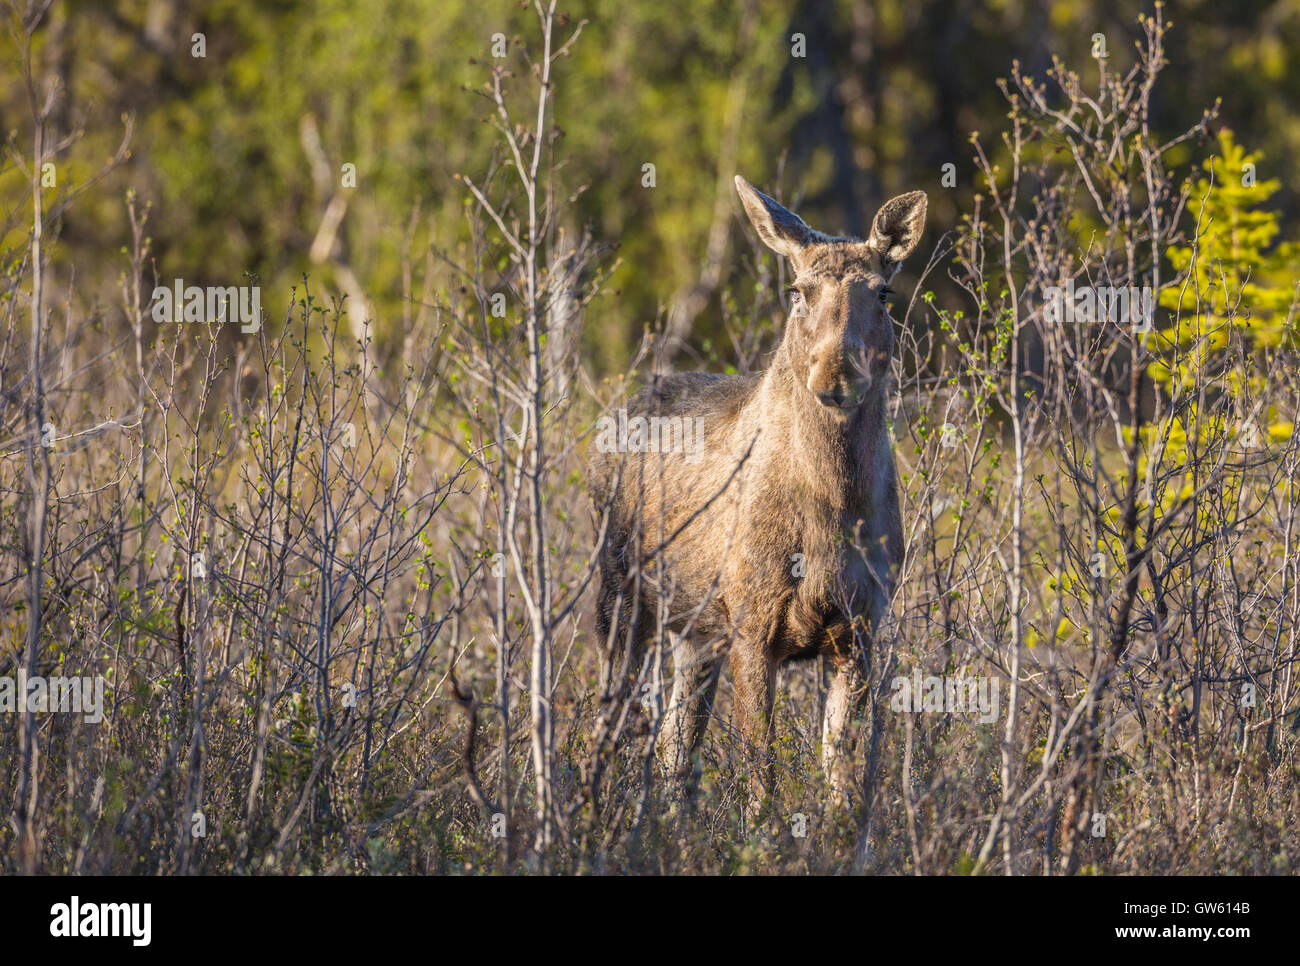 Moose among budding birch trees looking in to the camera, Gällivare, Swedish Lapland, Sweden - Stock Image